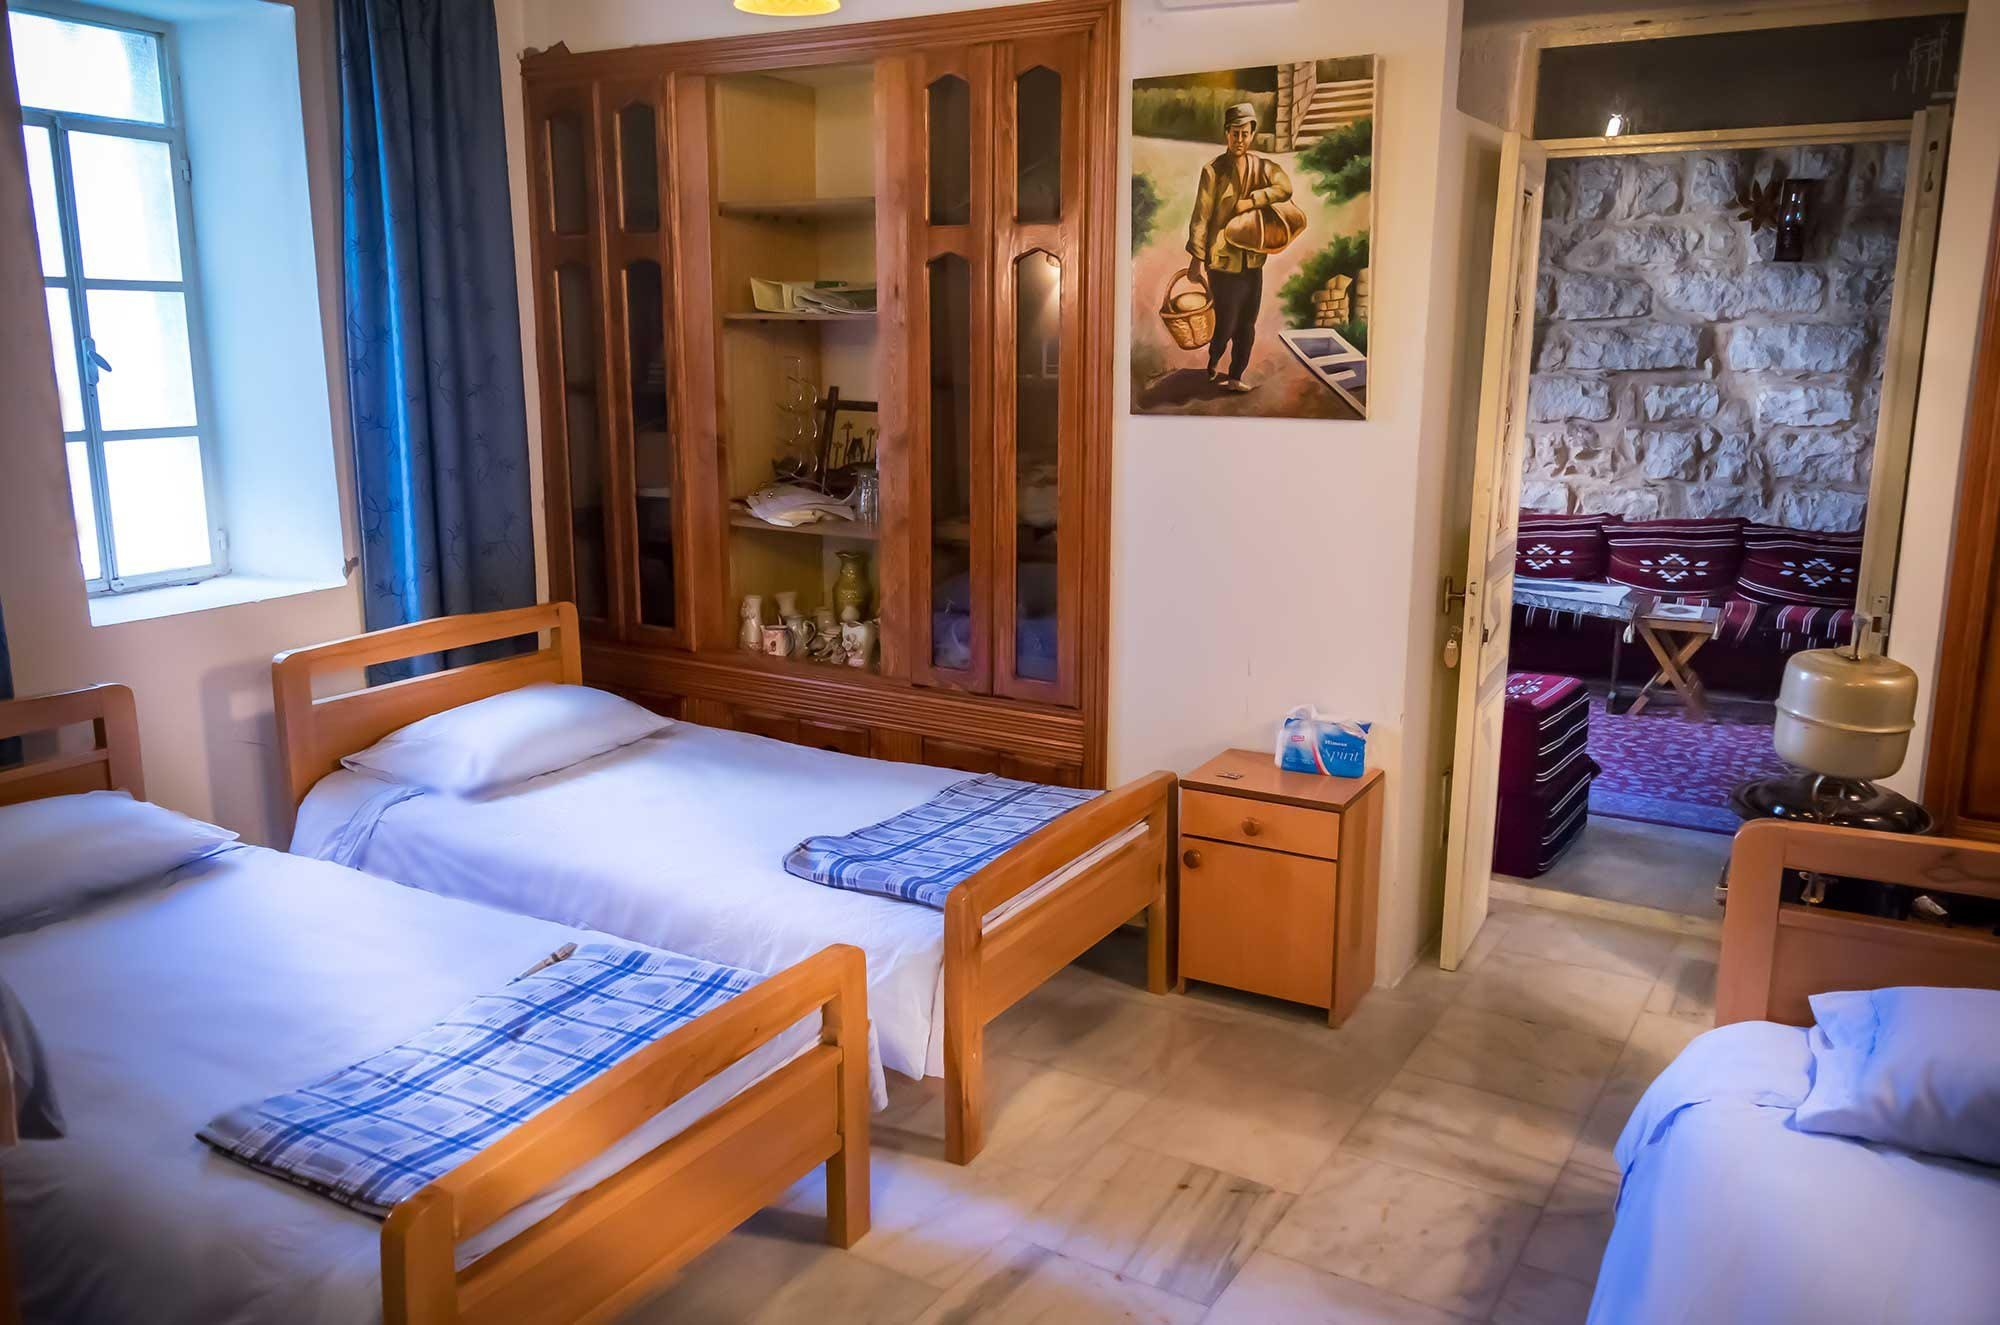 Best Rural Tourism In Lebanon Profile Of Inn Owner Anera With Pictures